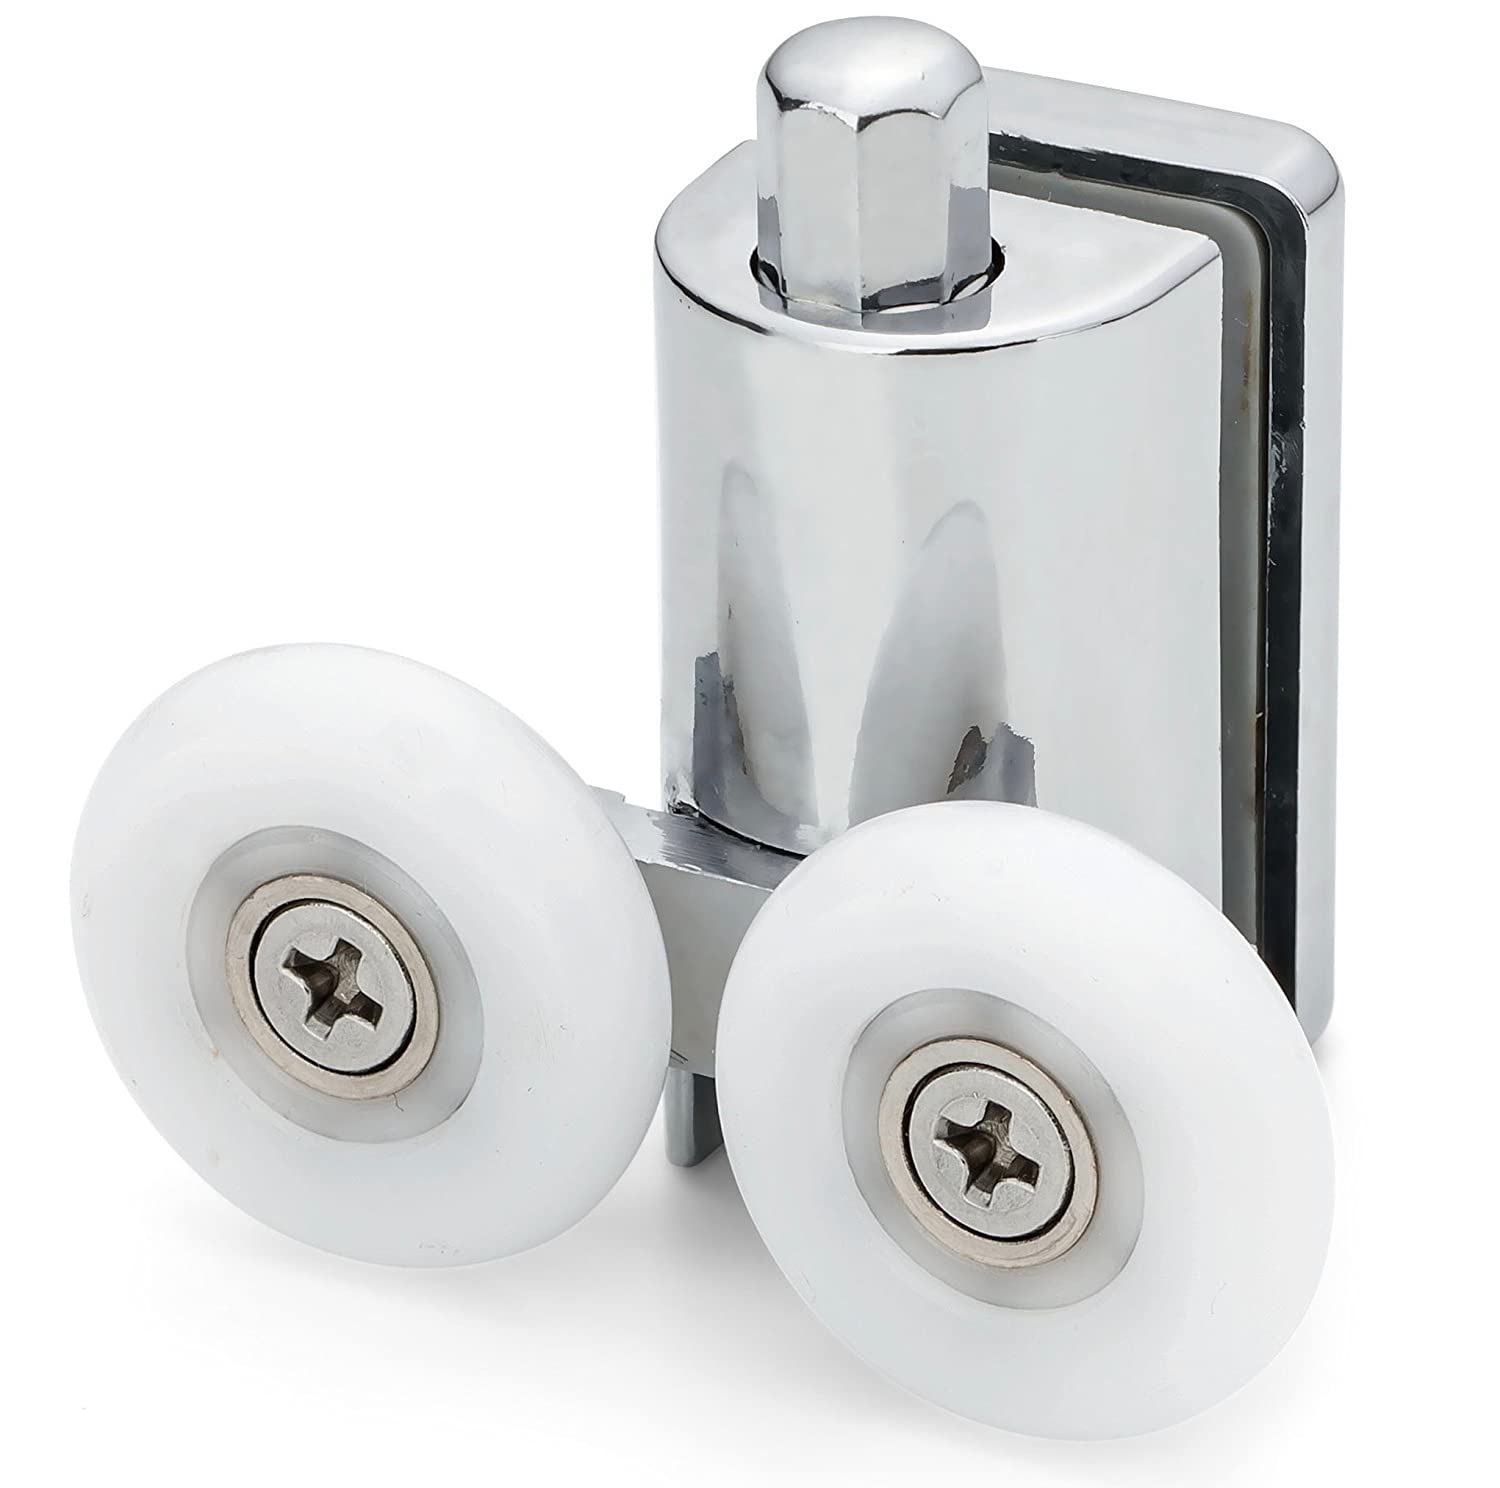 2 x Shower Double/Twin Bottom Door ROLLERS/Runners/Replacements/Spares/Wheels 23mm Wheel Diameter L073 Shower Part